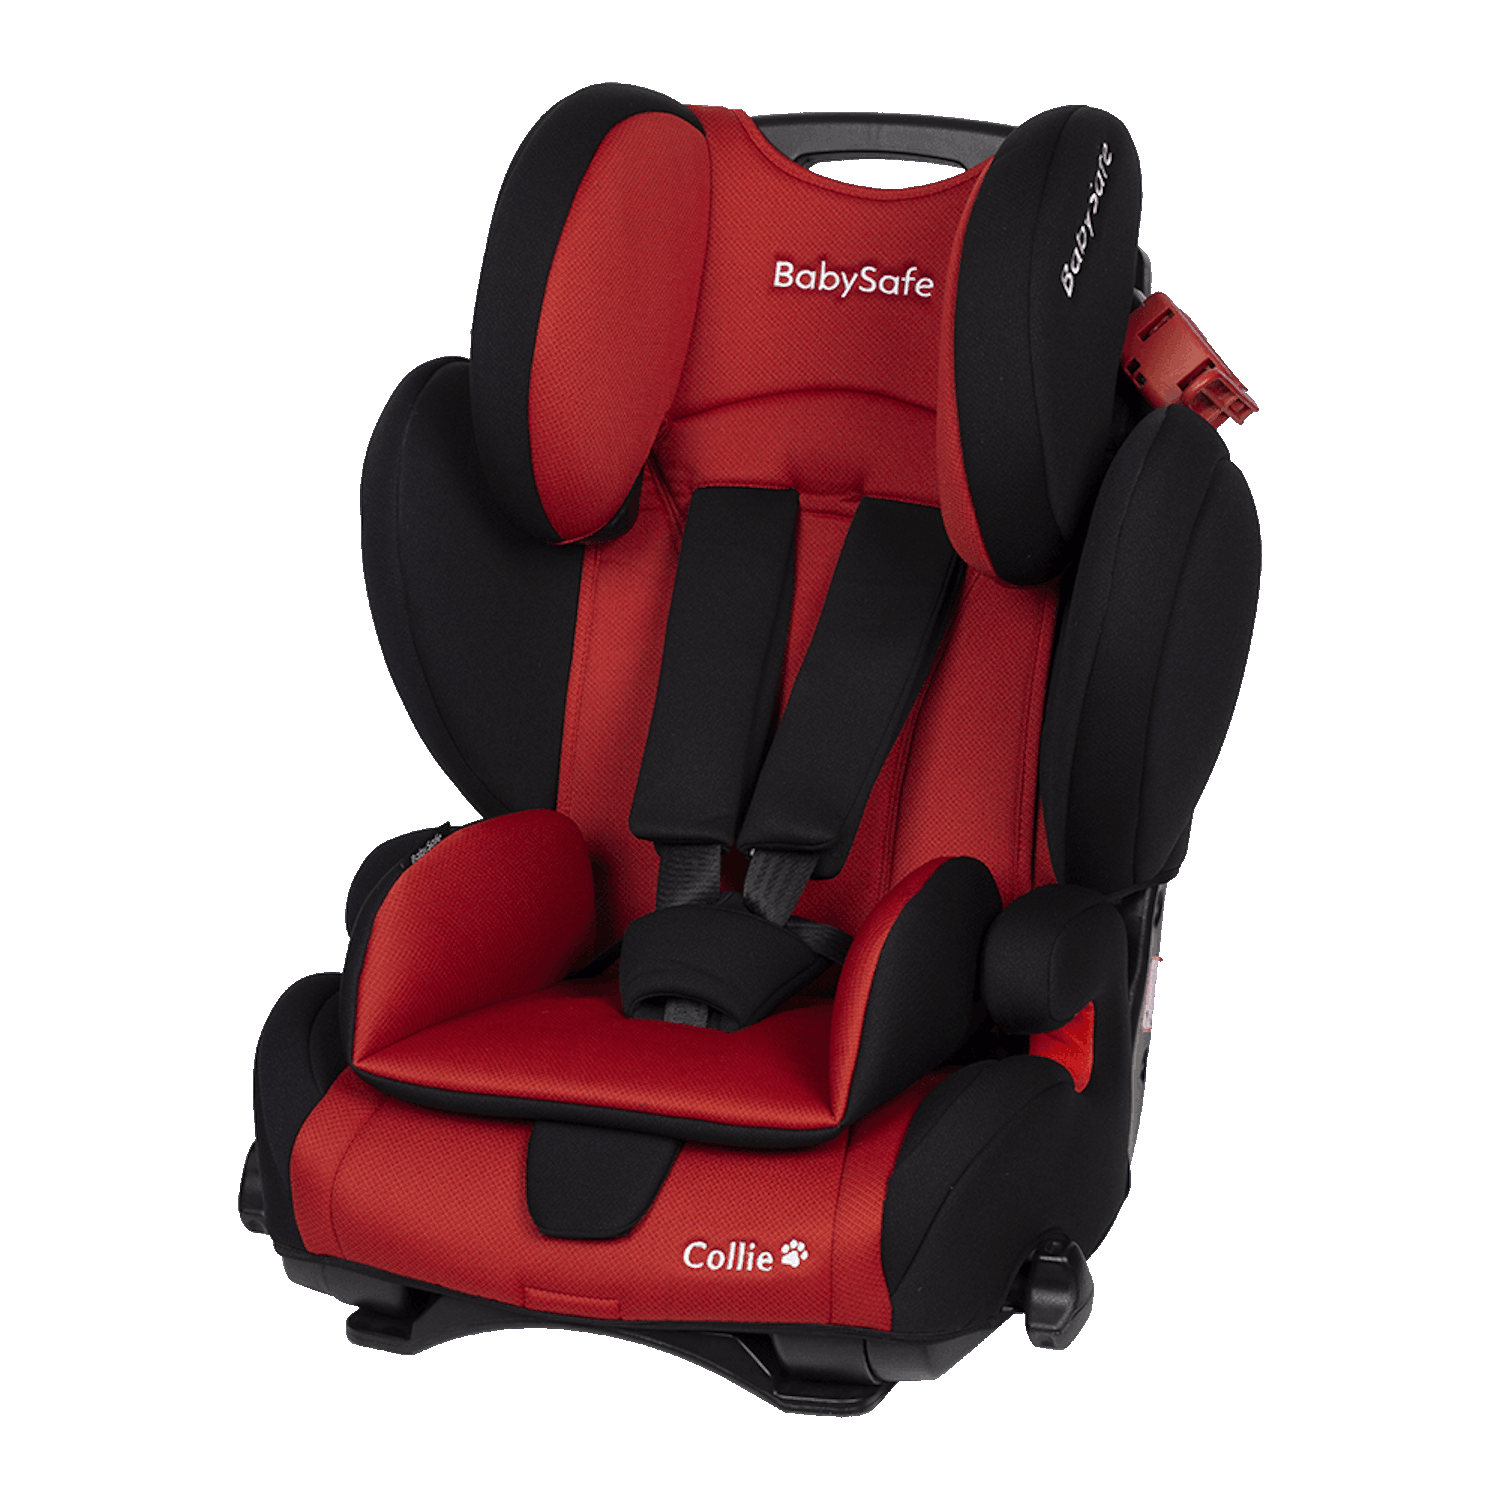 Babysafe Collie red-black Child Seat (9